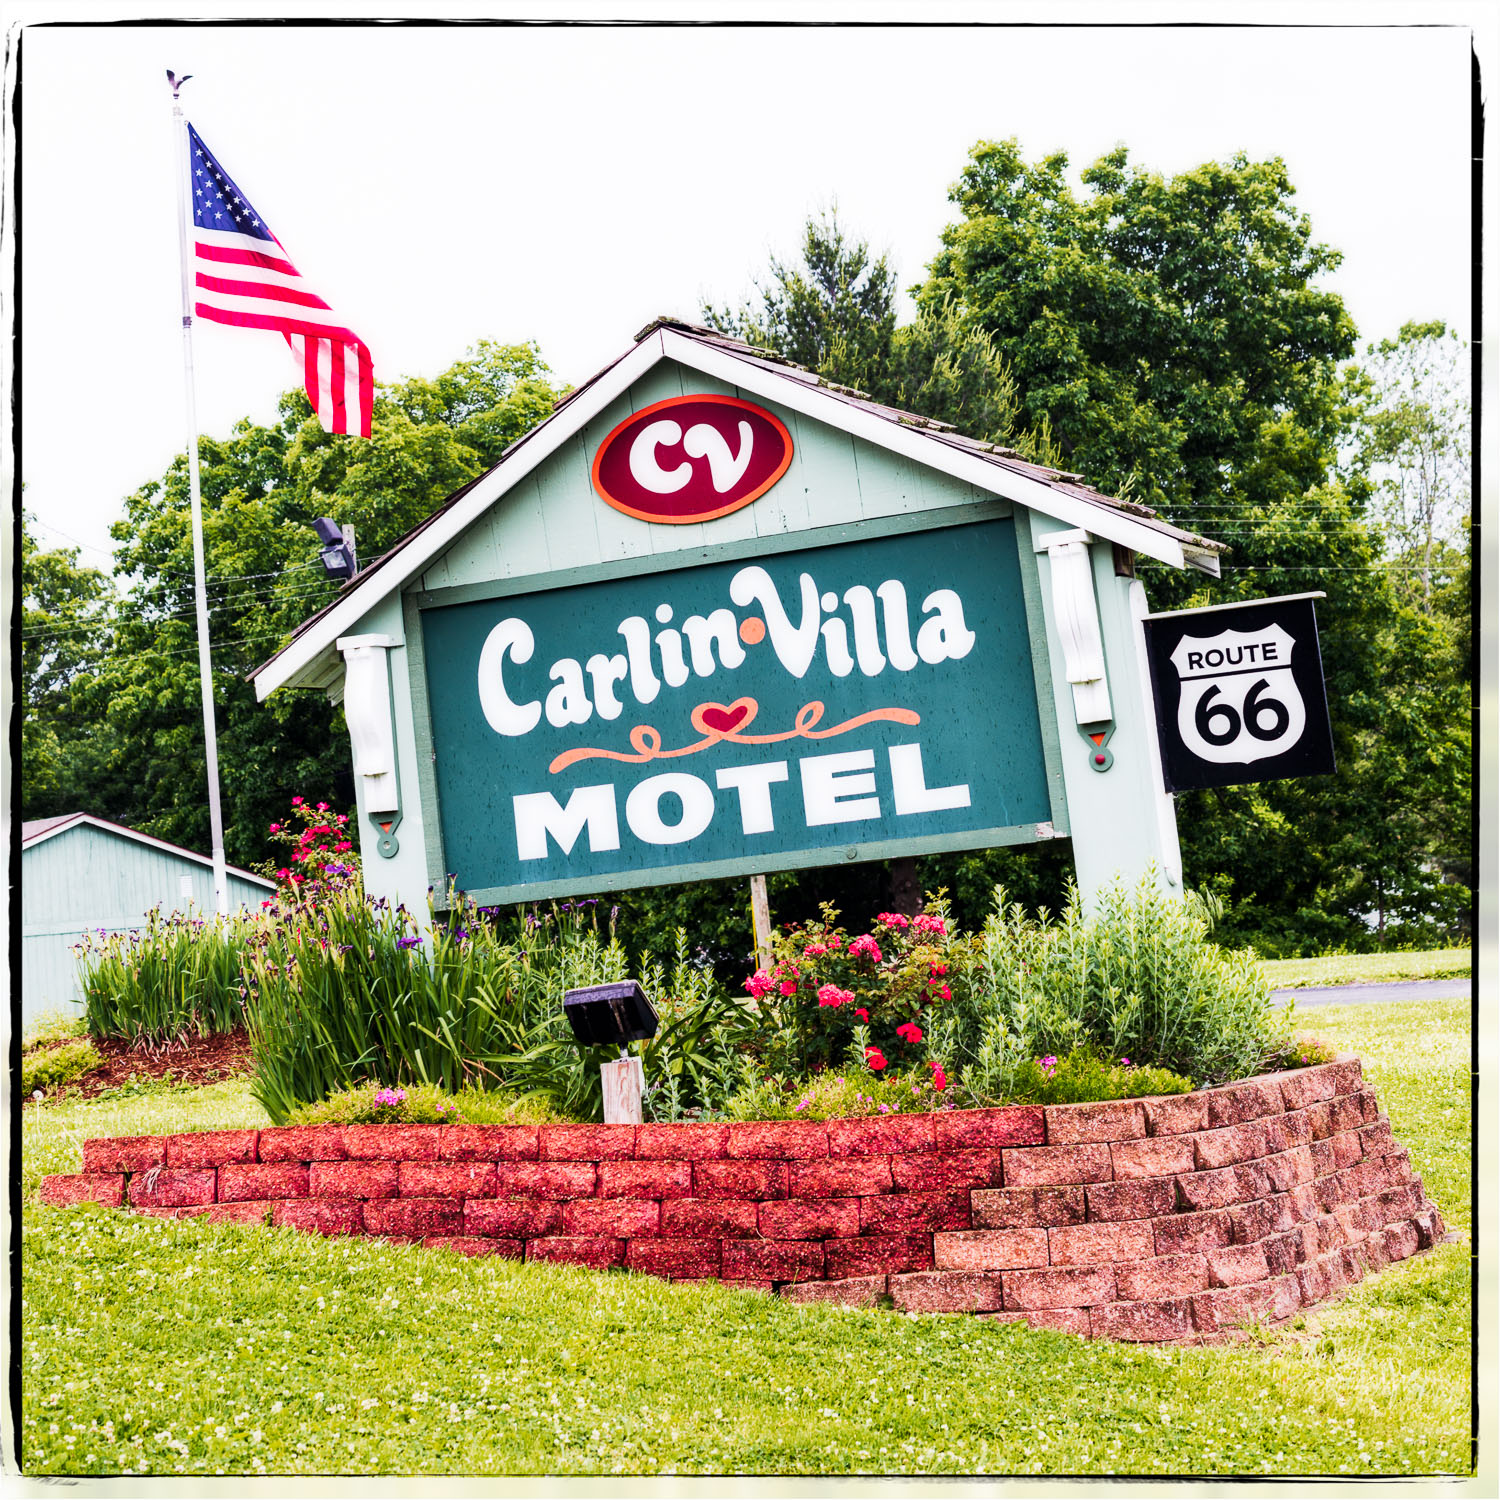 Carlinville IL   Carlin-Villa Motel - Time has been quite merciful to this one-story, 33-room motel, which has preserved its passé style with grace. Guests can cozy up next to a round brick fireplace in the tiny lobby, where CarlinVilla's dated charm surges, or enjoy a splash in the outdoor swimming pool. With historic downtown Carlinville a stone's throw away, CarlinVilla delivers a warm welcome into the local community and its legacy on the Mother Road. Located on 1926-1930 Route 66, now Illinois 4.-Brennen MatthewsAddress: 18891 Route 4 SouthPhone: 217-854-3201Website